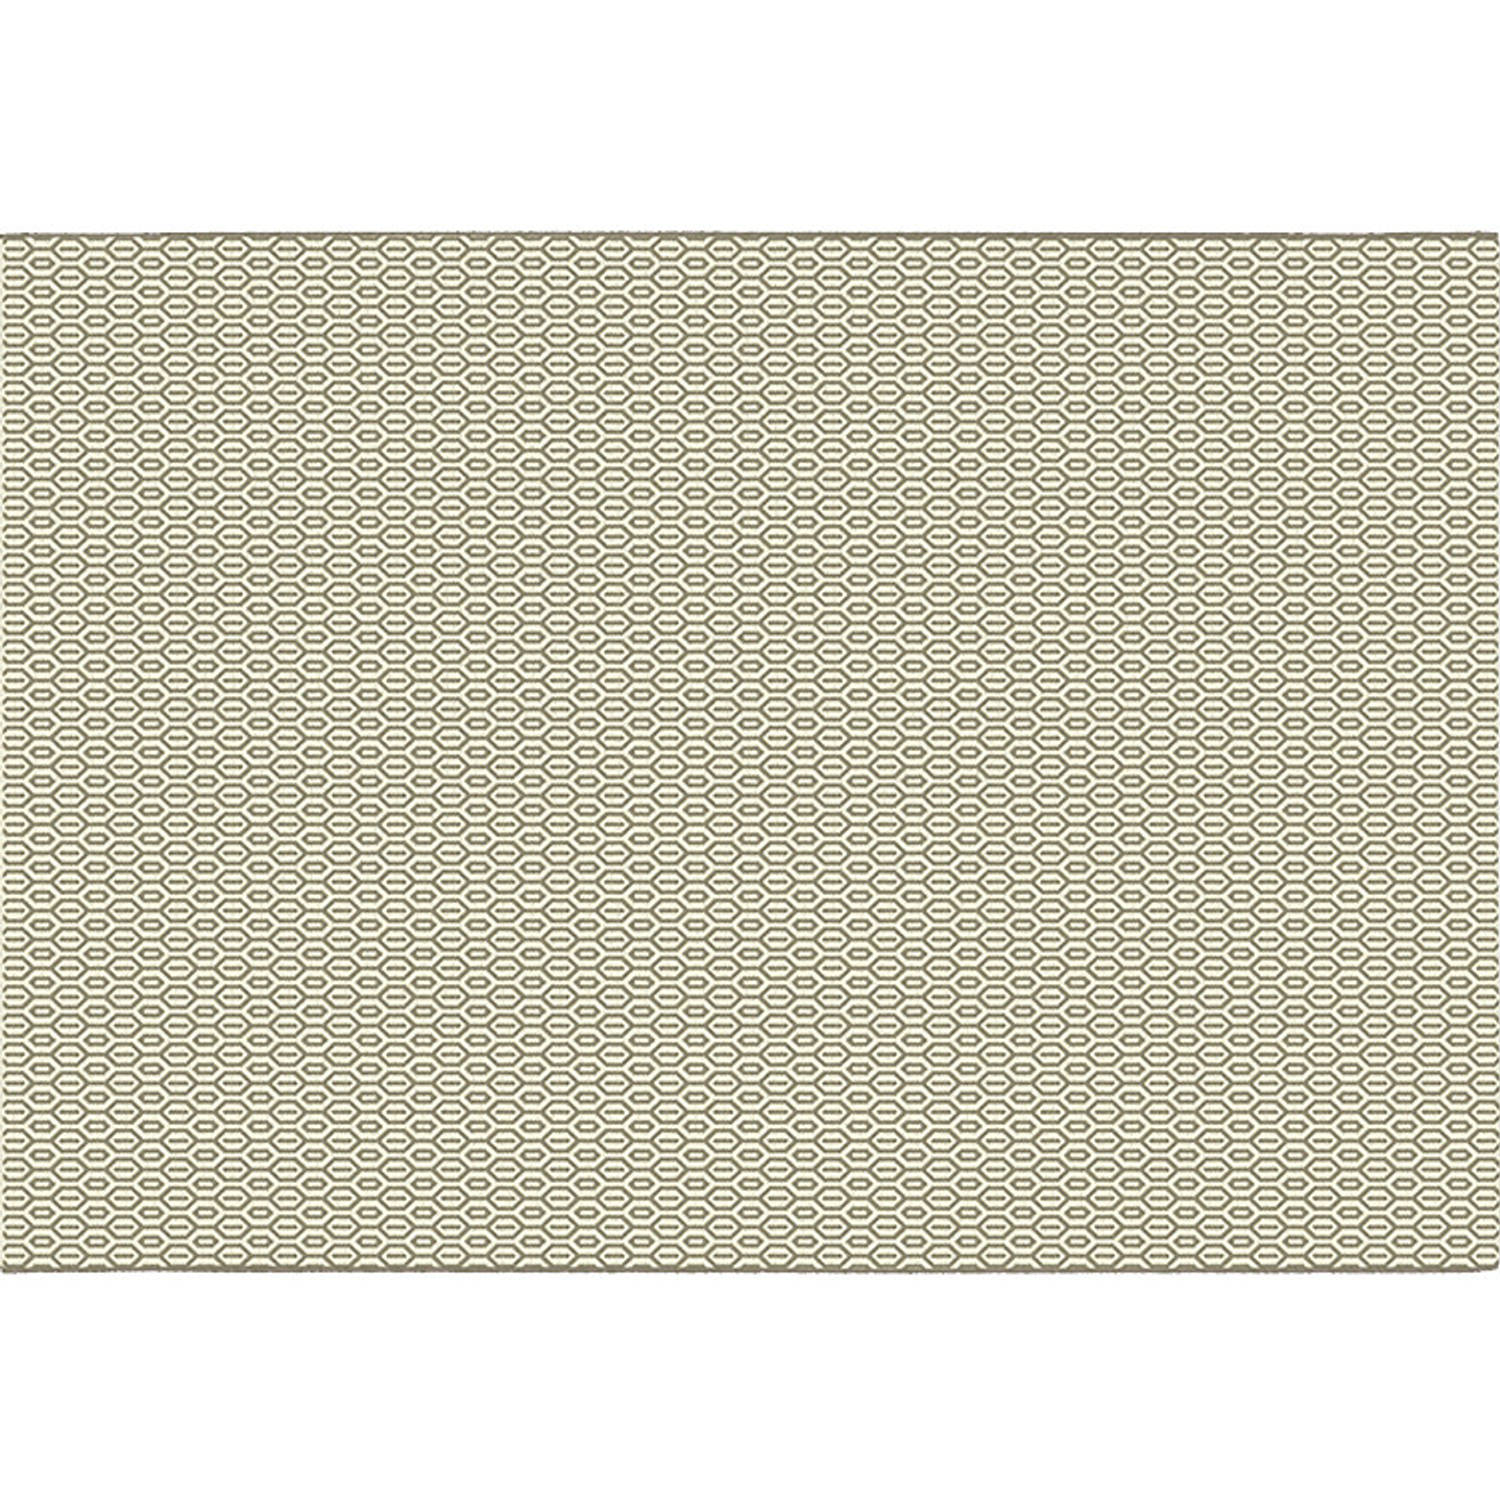 Garden Impressions Buitenkleed Eclips Taupe - 120x170 cm